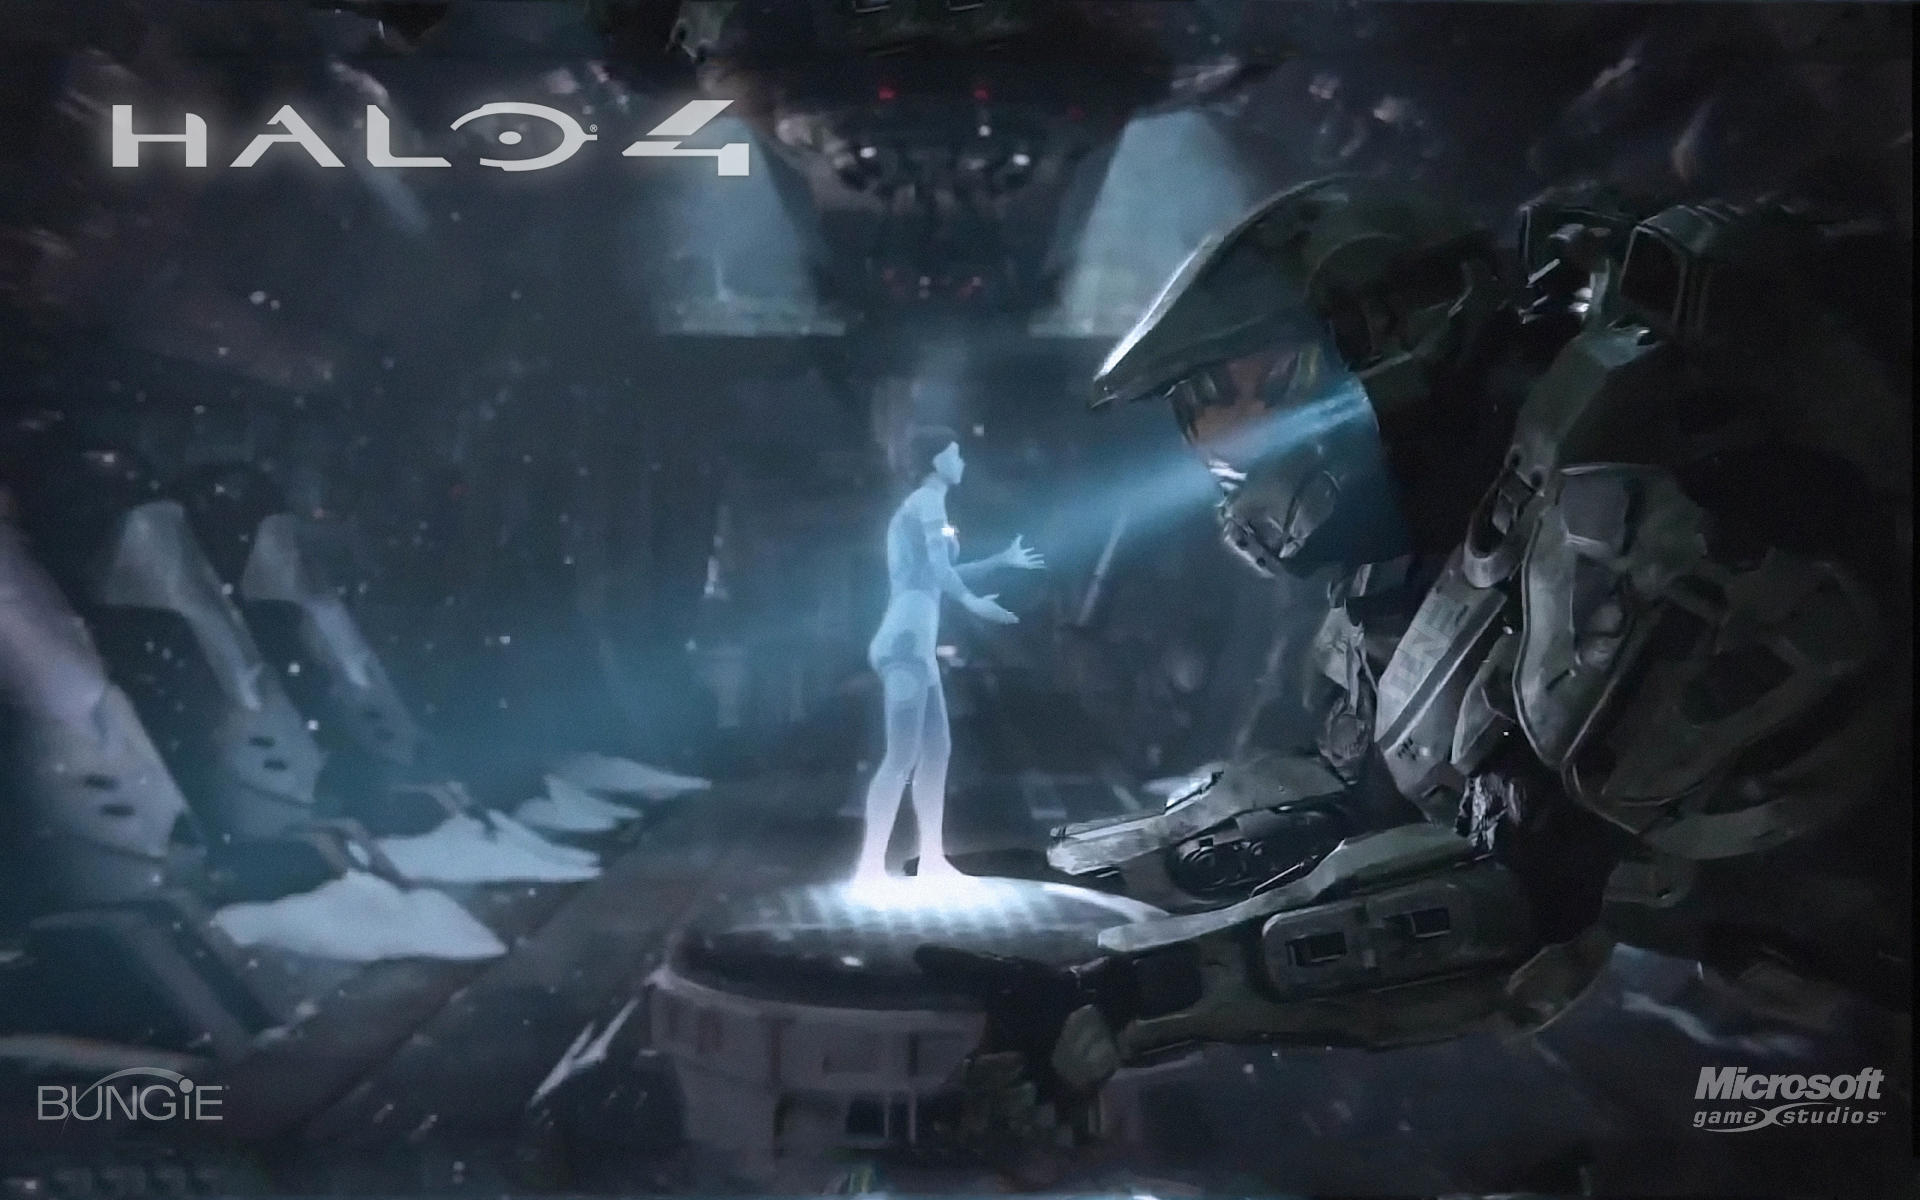 Halo 4 Wallpaper 1 HD By Ockre